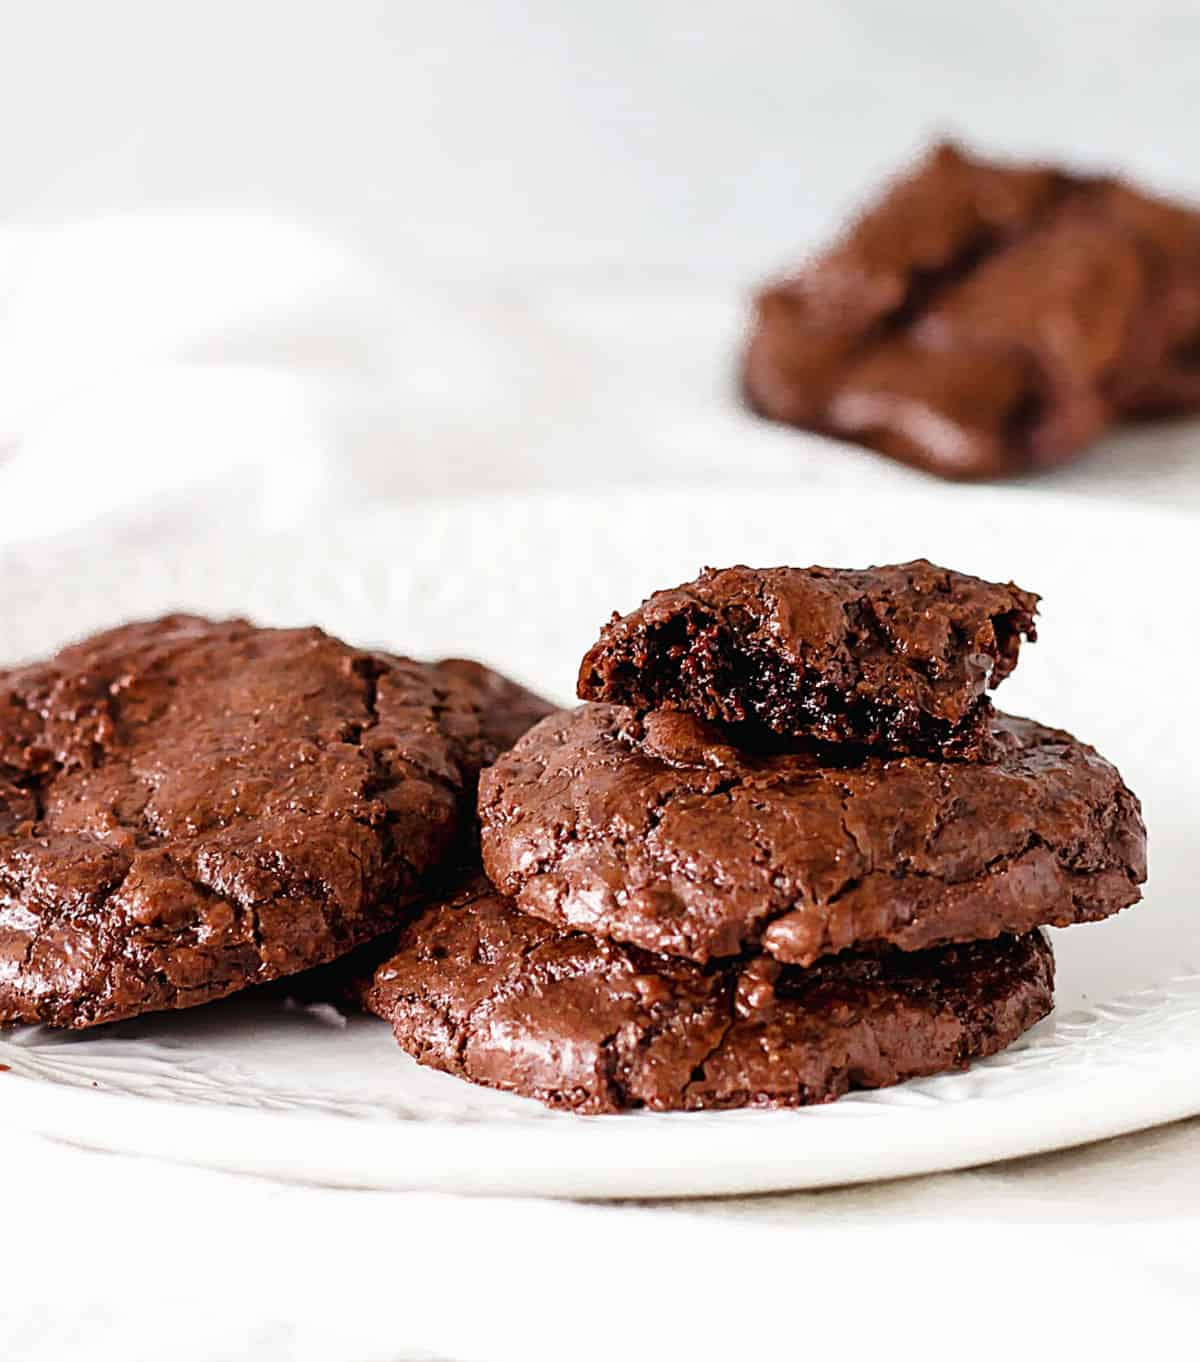 White plate with brownie cookies, whole and eaten; greyish background